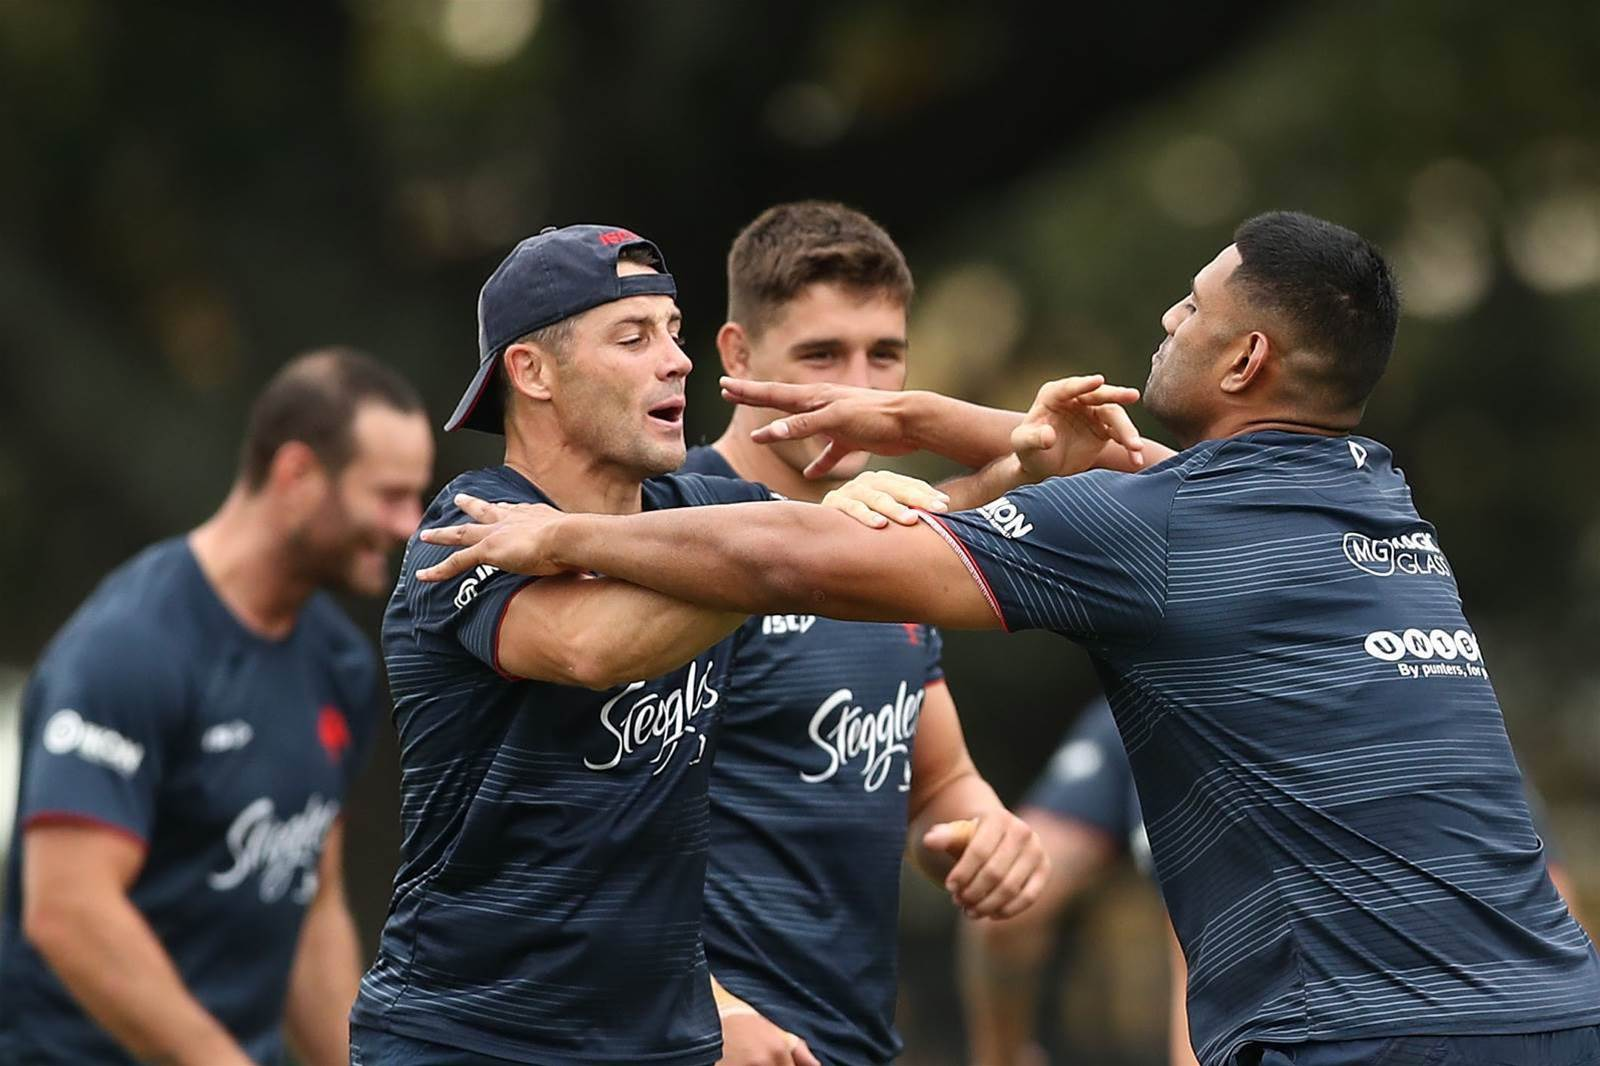 NRL training pic special: Rabbitohs and Roosters